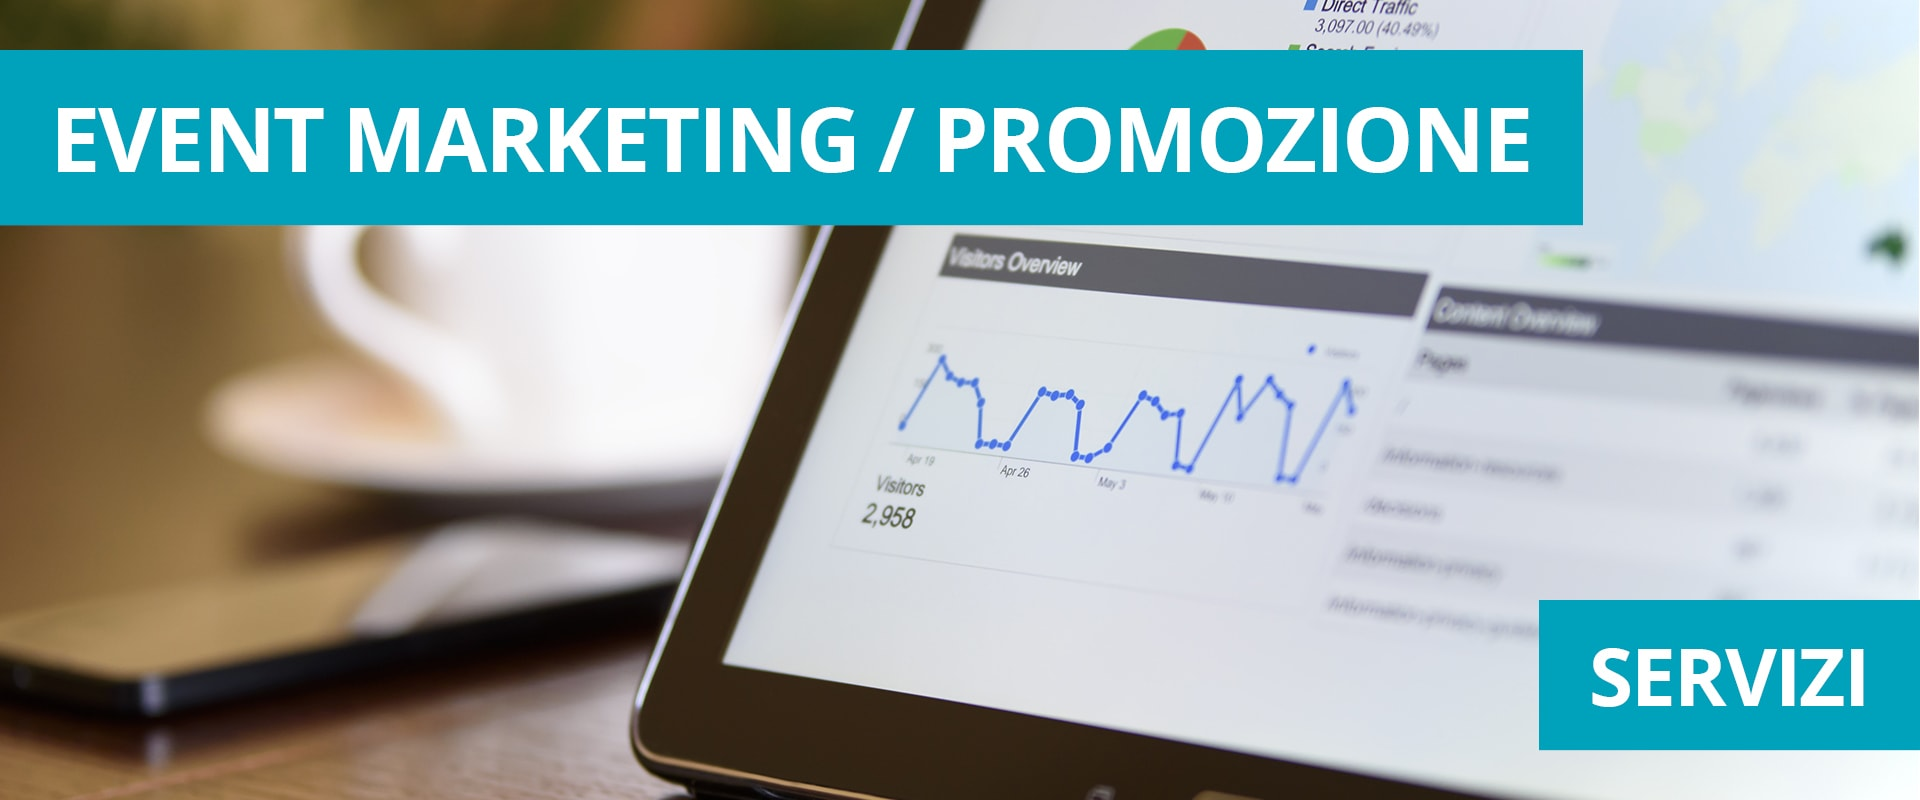 event-marketingpromozione.jpg